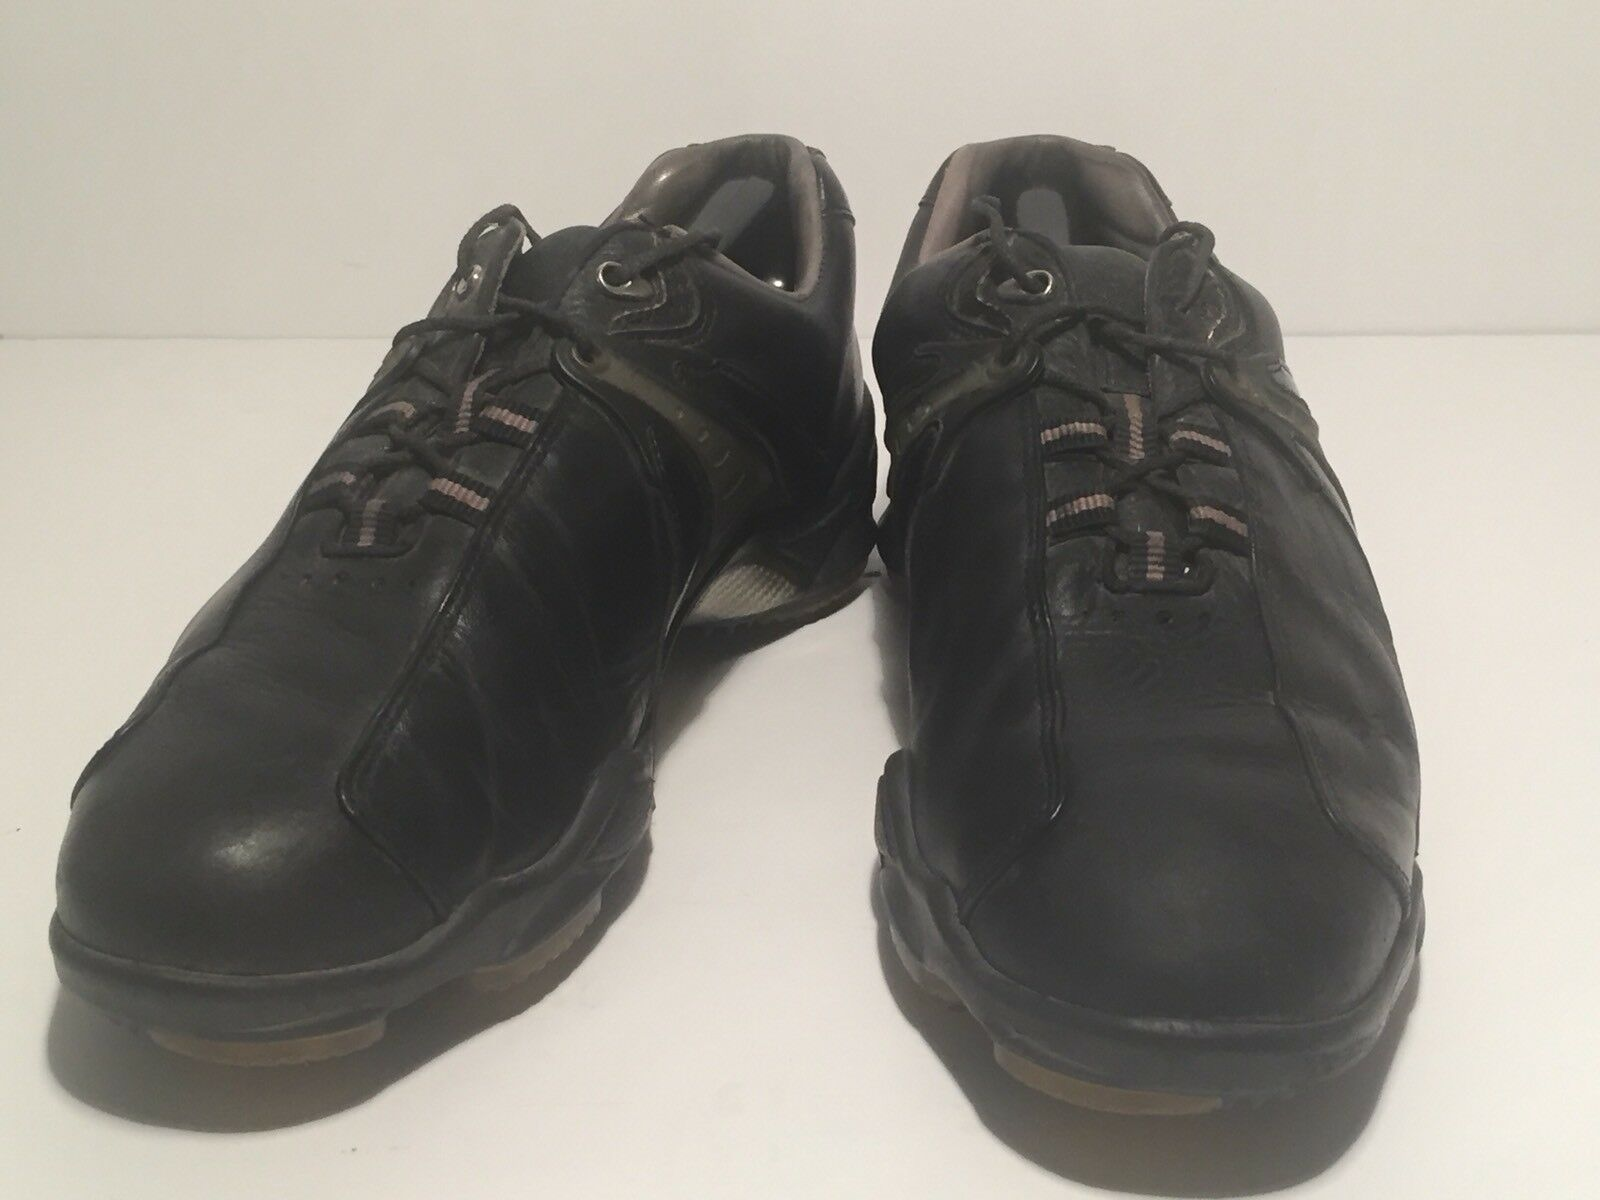 finest selection e6bca 1cae4 FootJoy DryJoys DryJoys DryJoys Tour 53523 Men s Black Leather Golf Shoes  Size 10M  199 32c11d